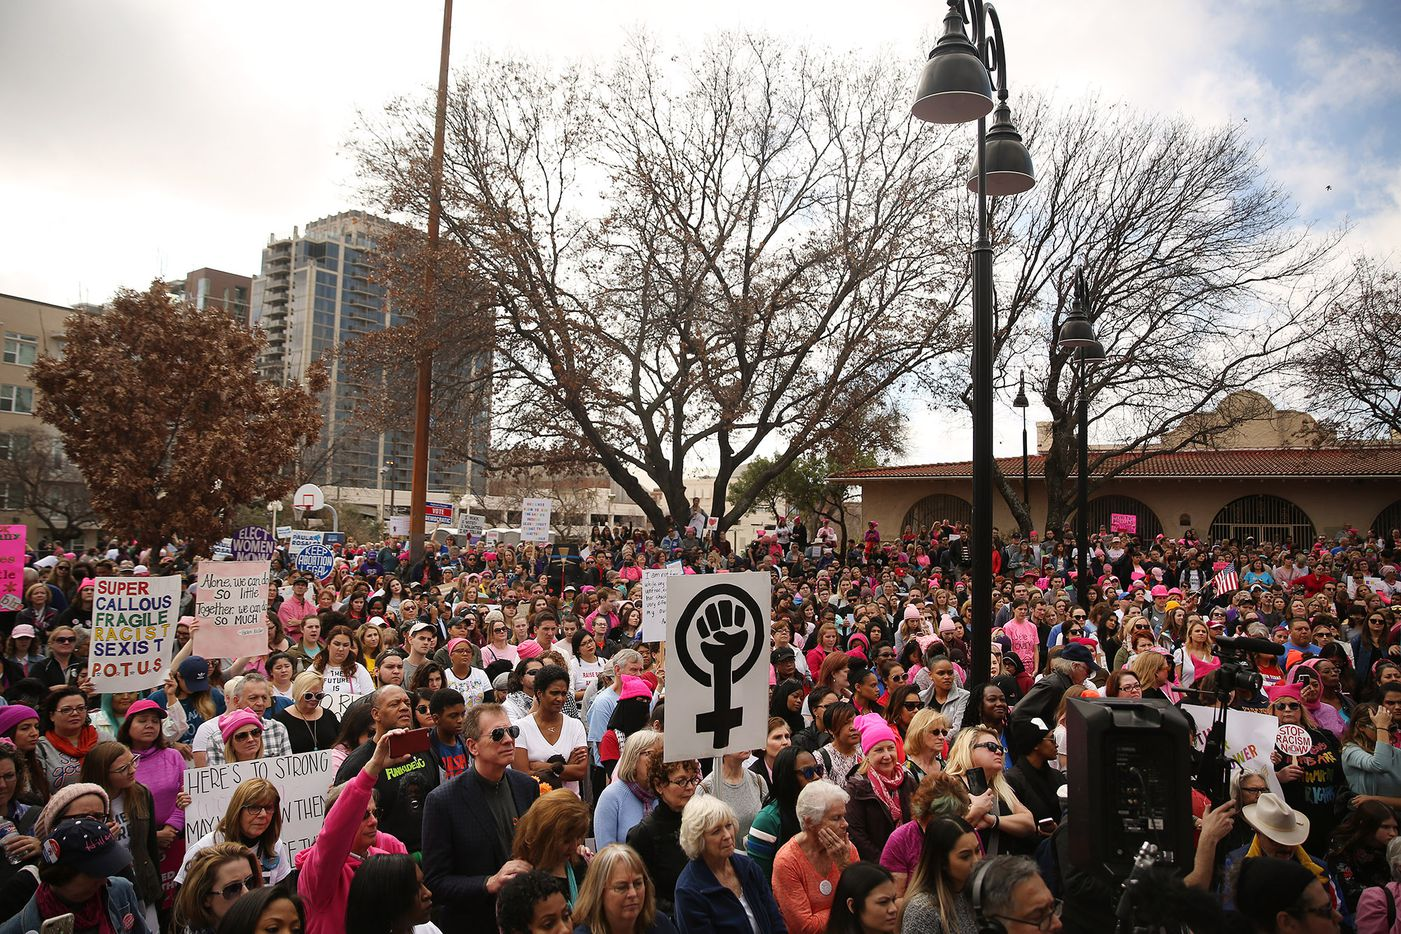 Marchers listens as speakers make comments at Pike Park during the rally portion of the Dallas Women's March in Dallas Saturday.